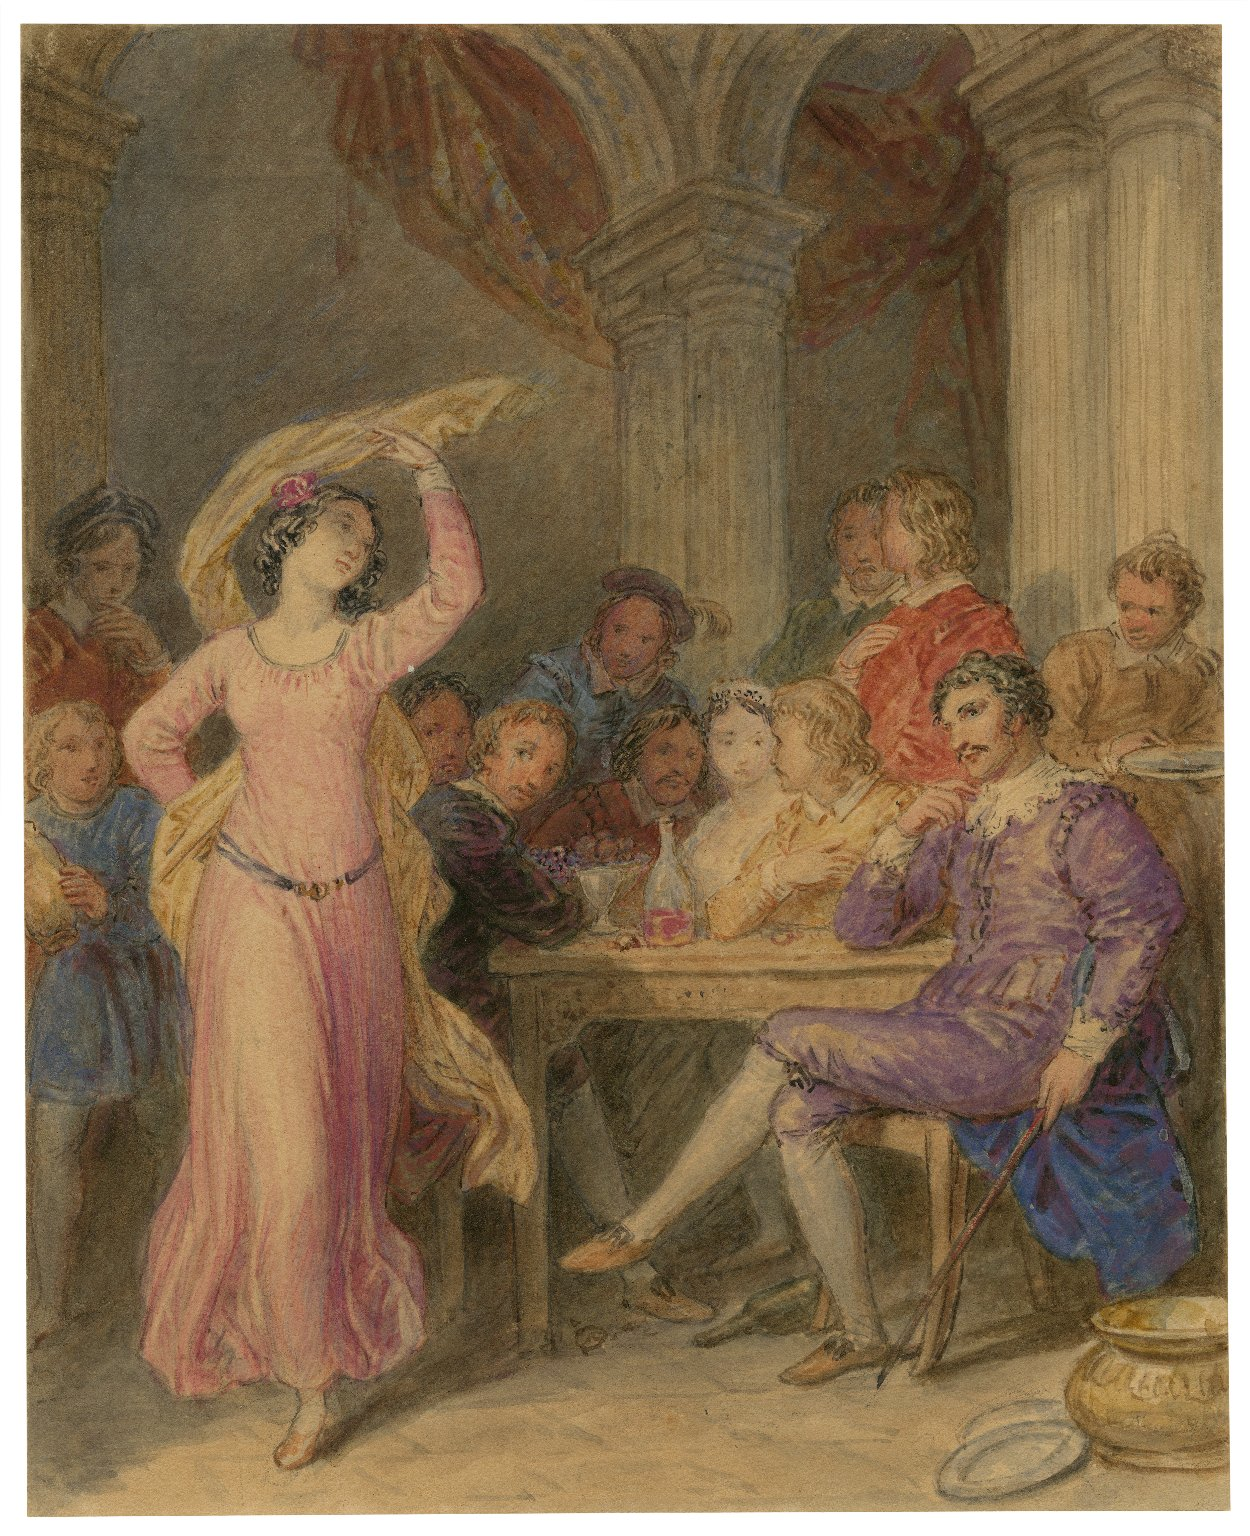 [Scene from Taming of the shrew - act V, sc. 2] [graphic] / [John Wright].